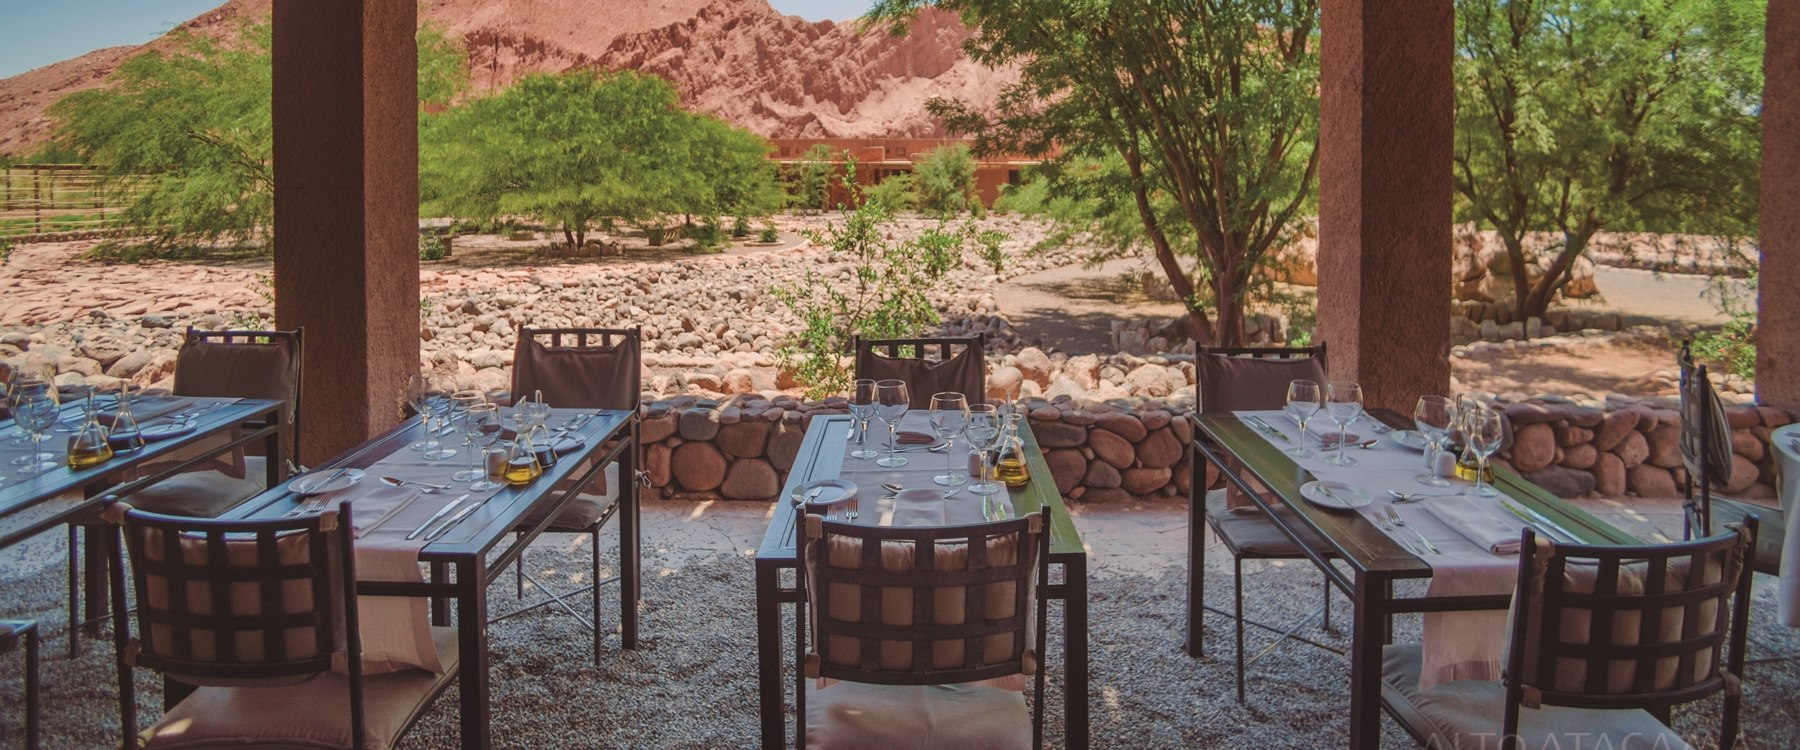 Outdoor restauant at alto atacama, Chile